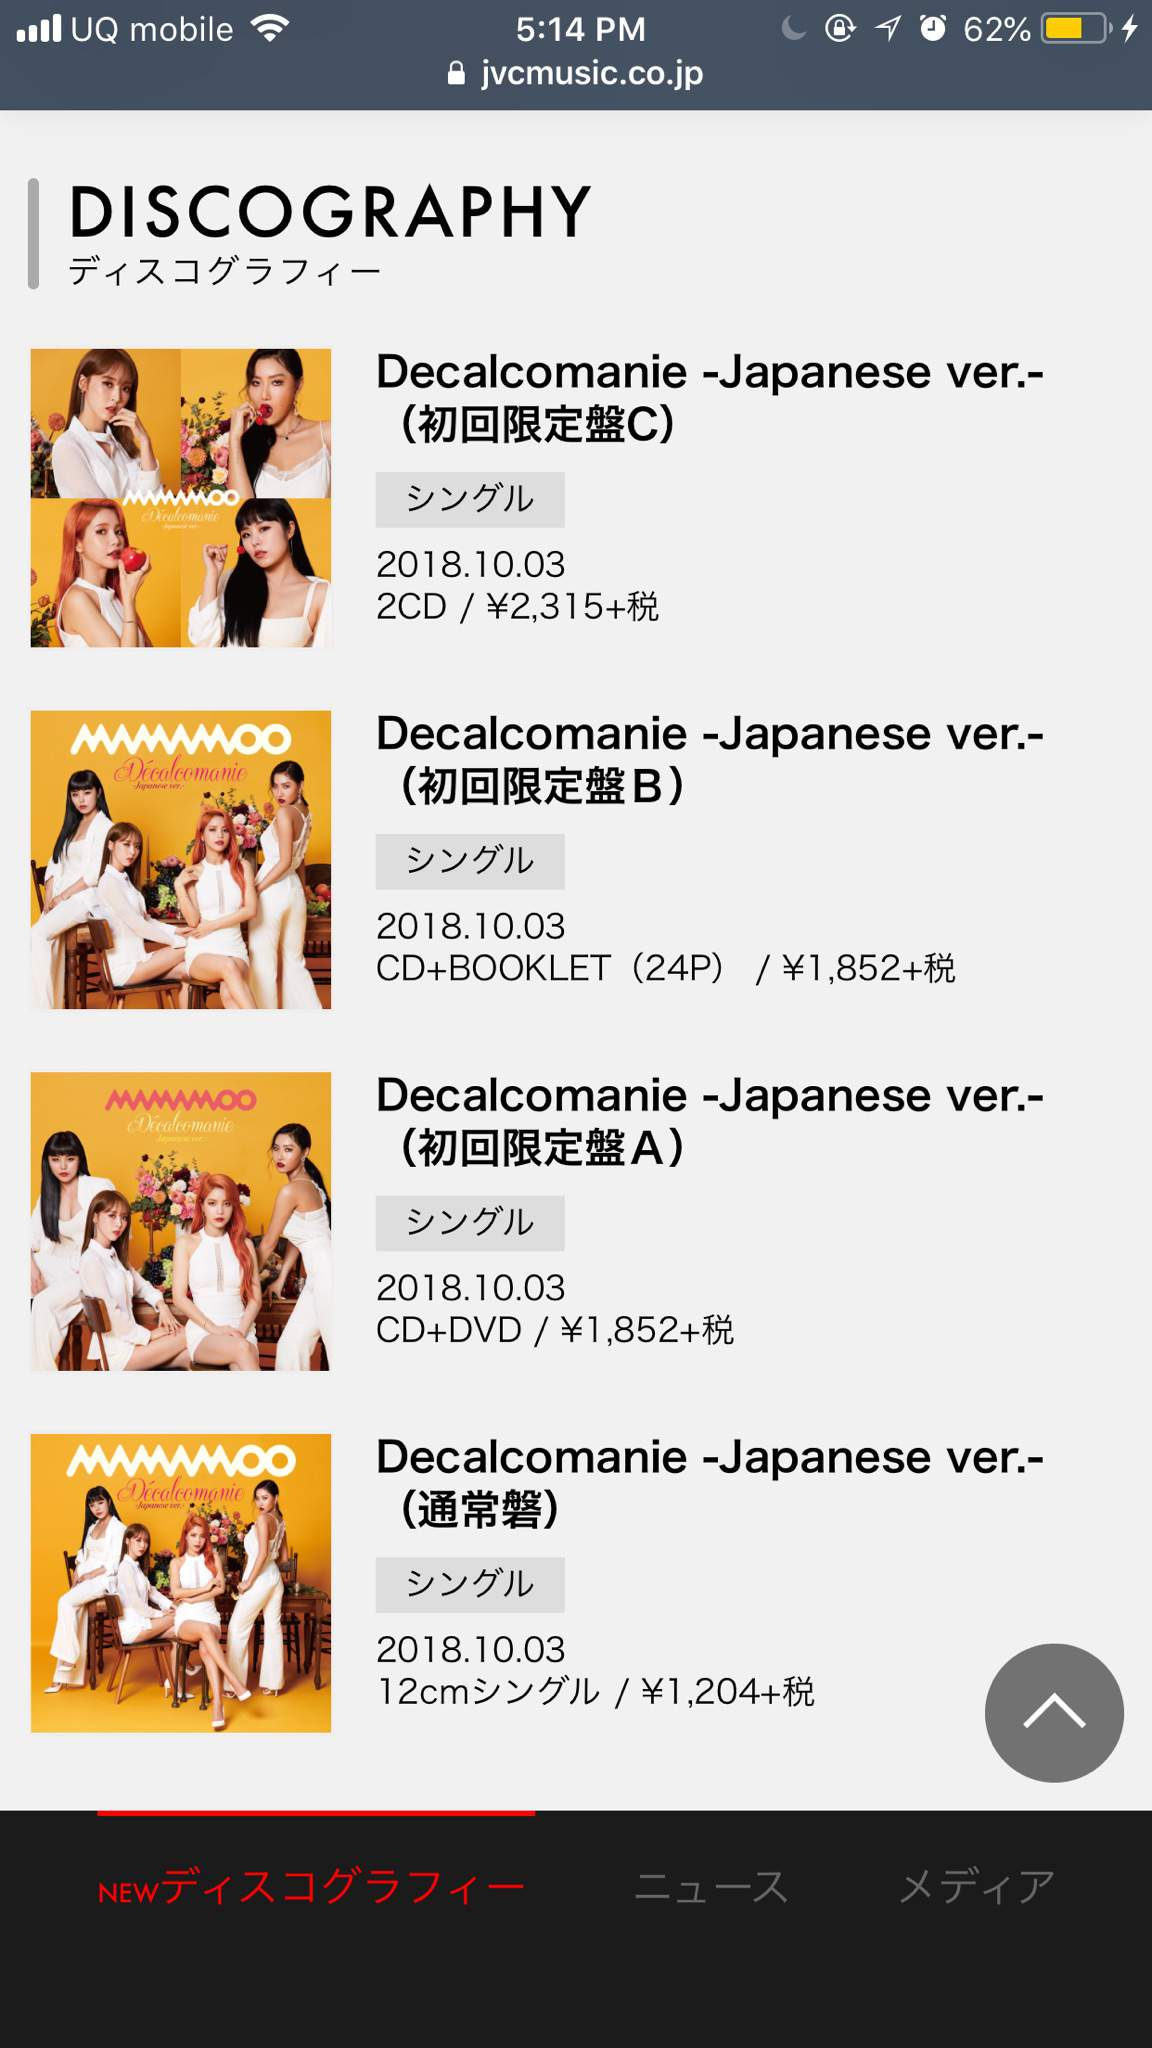 UPDATE 5] Decalcomanie JP Single Version Details | MAMAMOO Amino